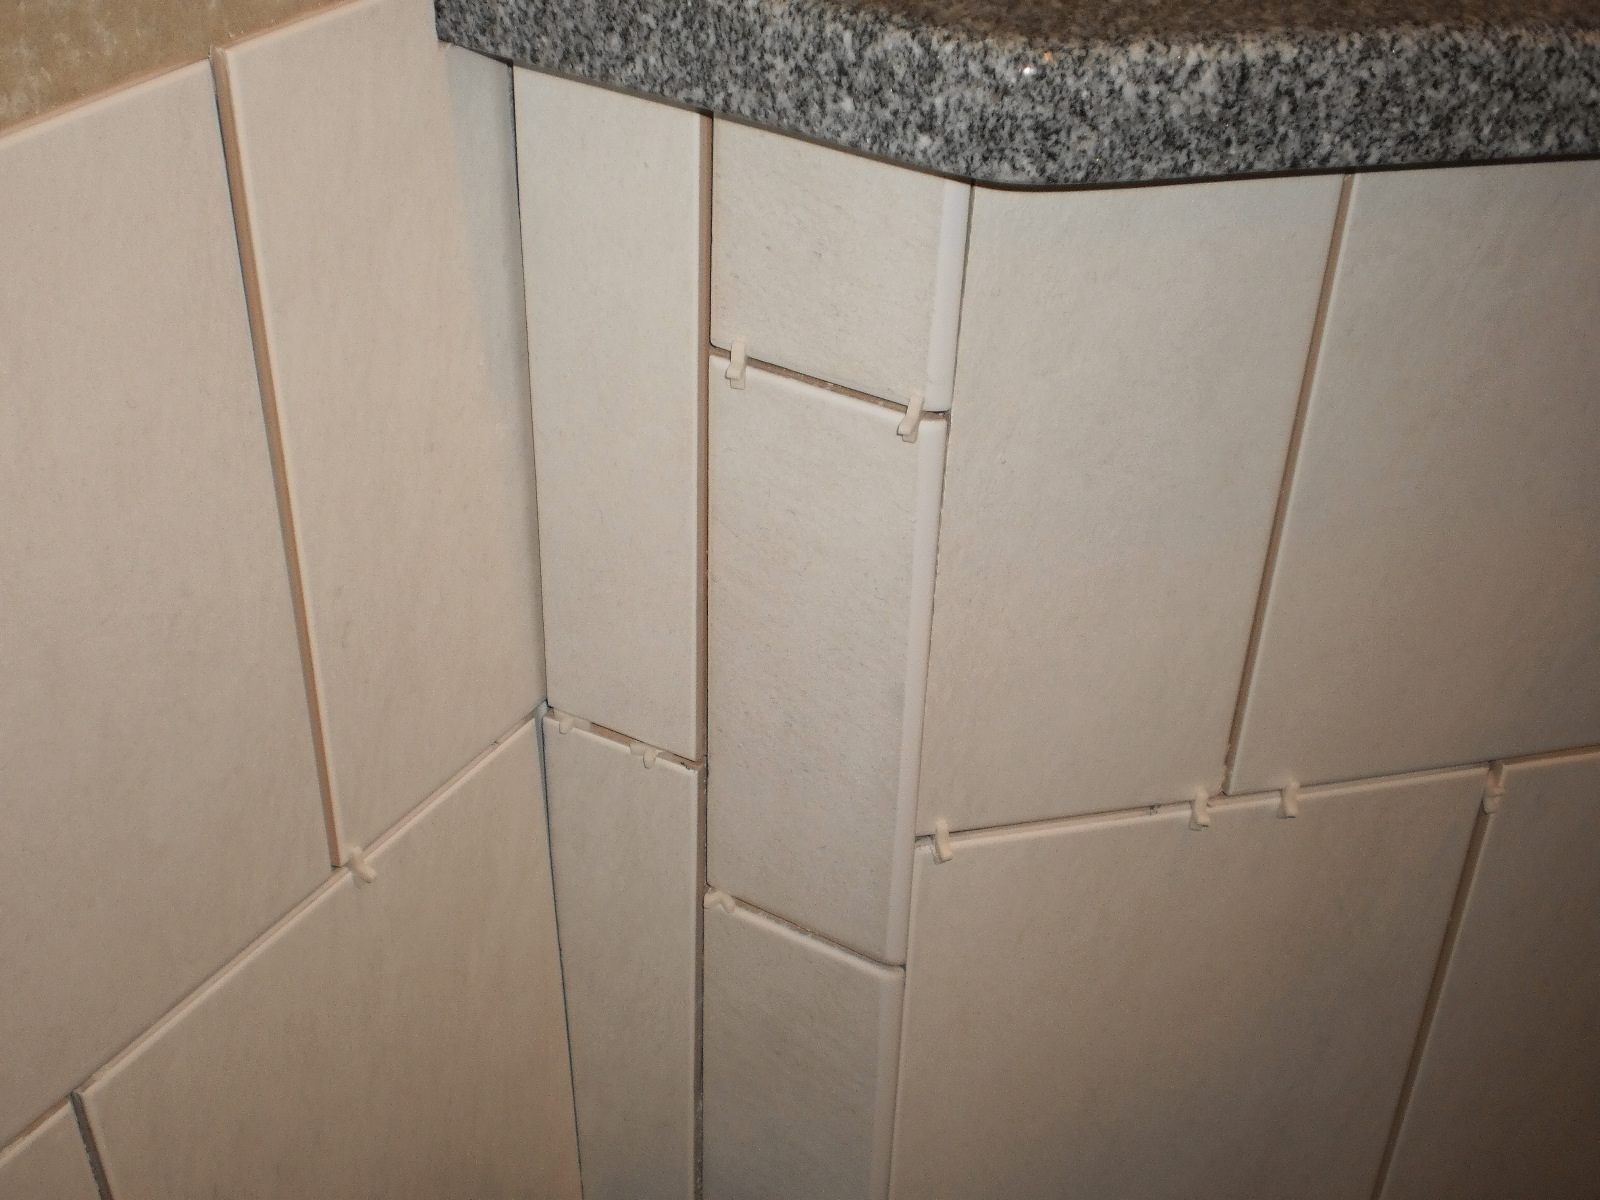 Sanded Or Unsanded Grout For Shower Wall